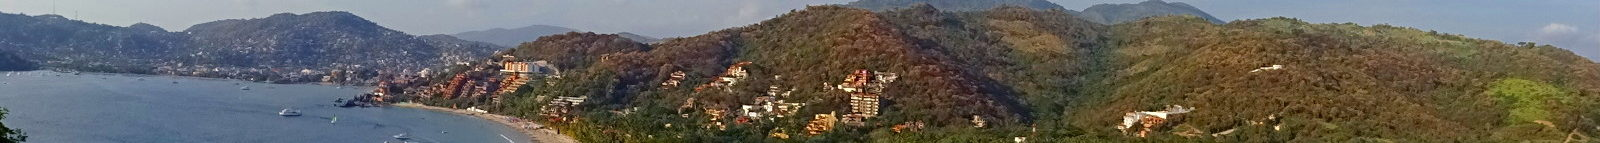 MBP (Mexico Beach Property) Real Estate